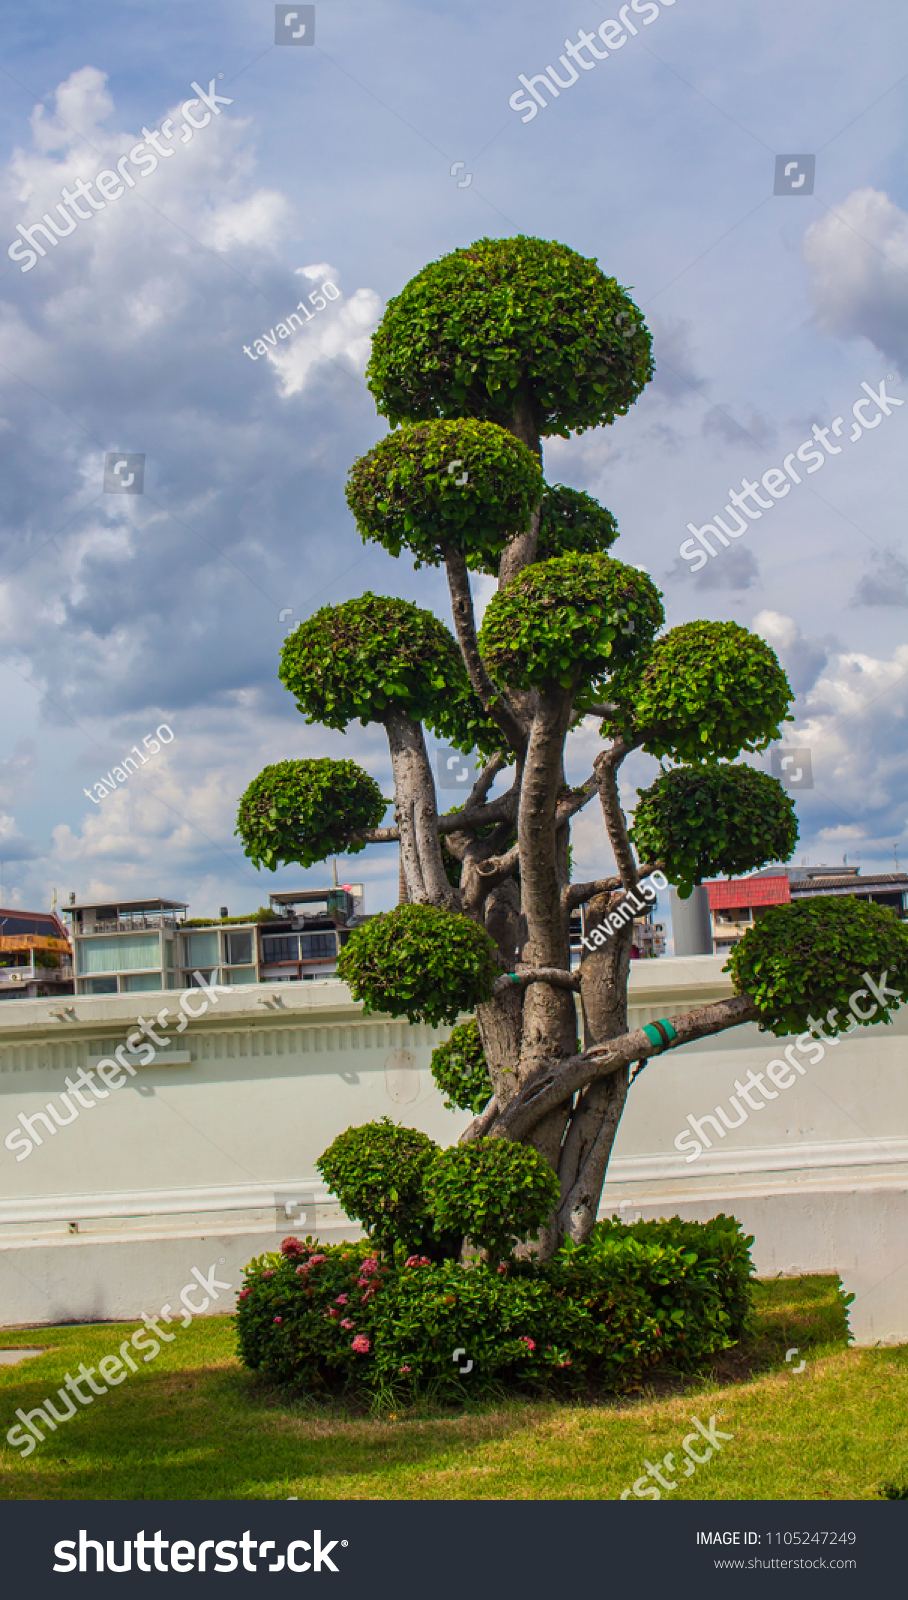 Ornamental tree for home gardening #1105247249